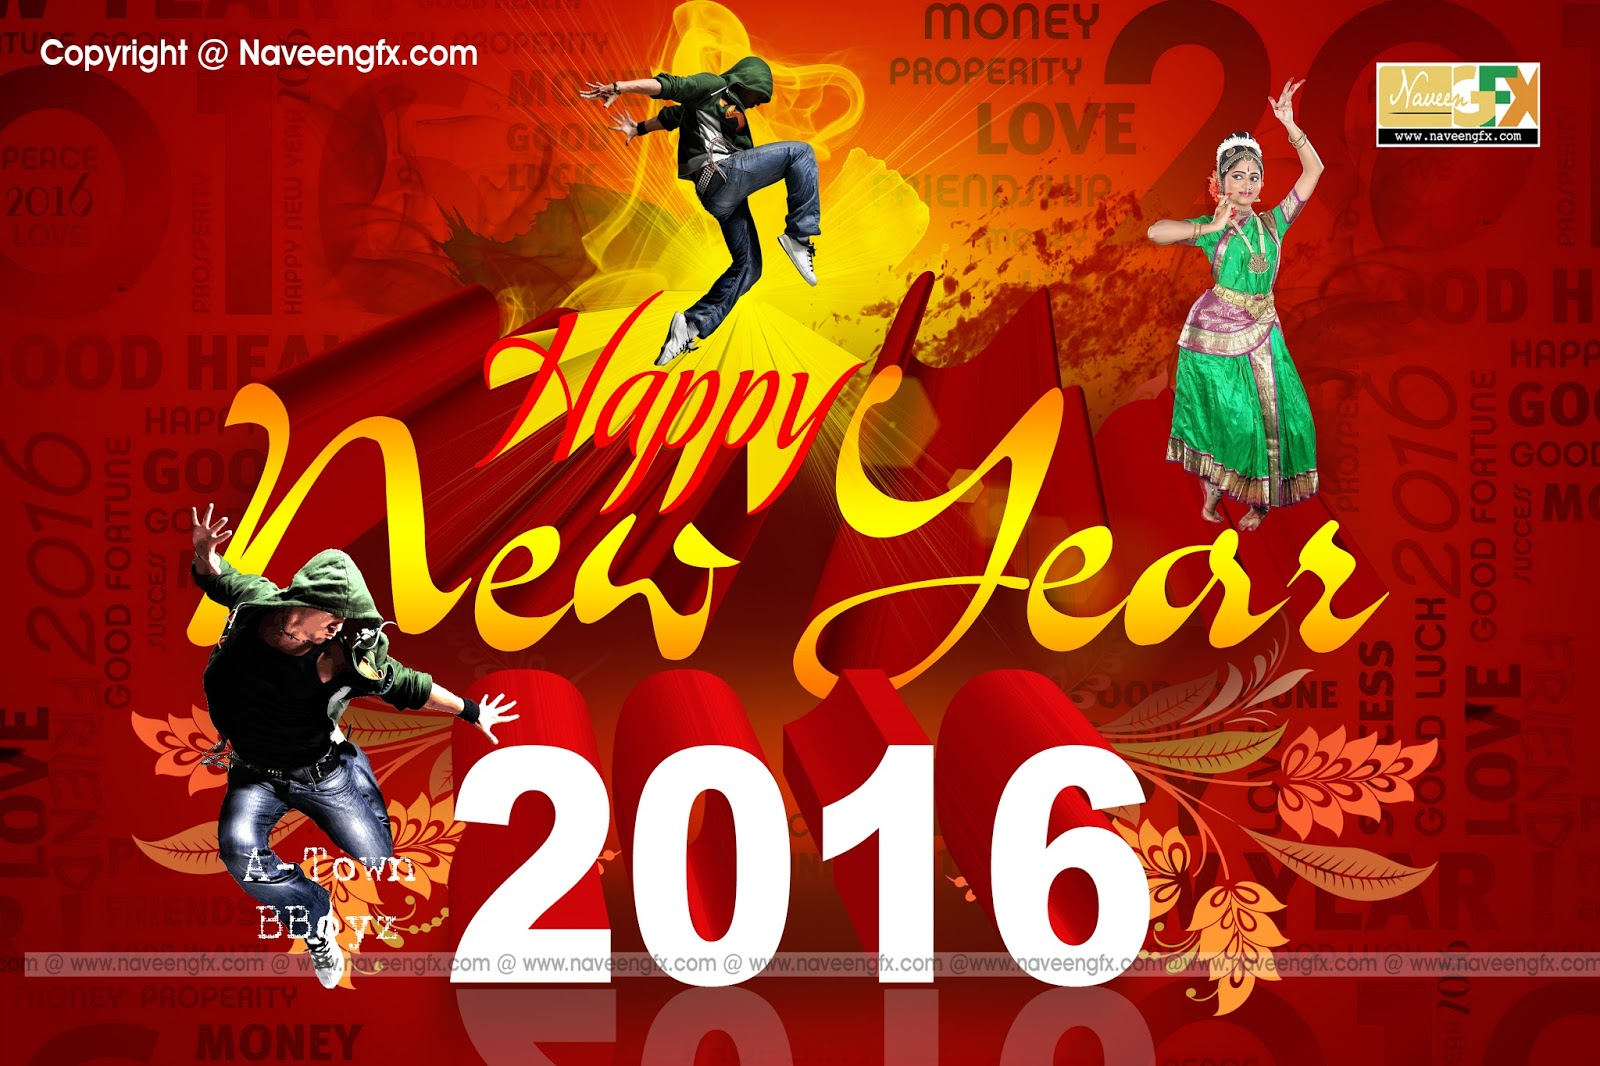 Happy new year 2016 psd background images free online naveengfx 2016 happy new year greetings psd template free donwloads m4hsunfo